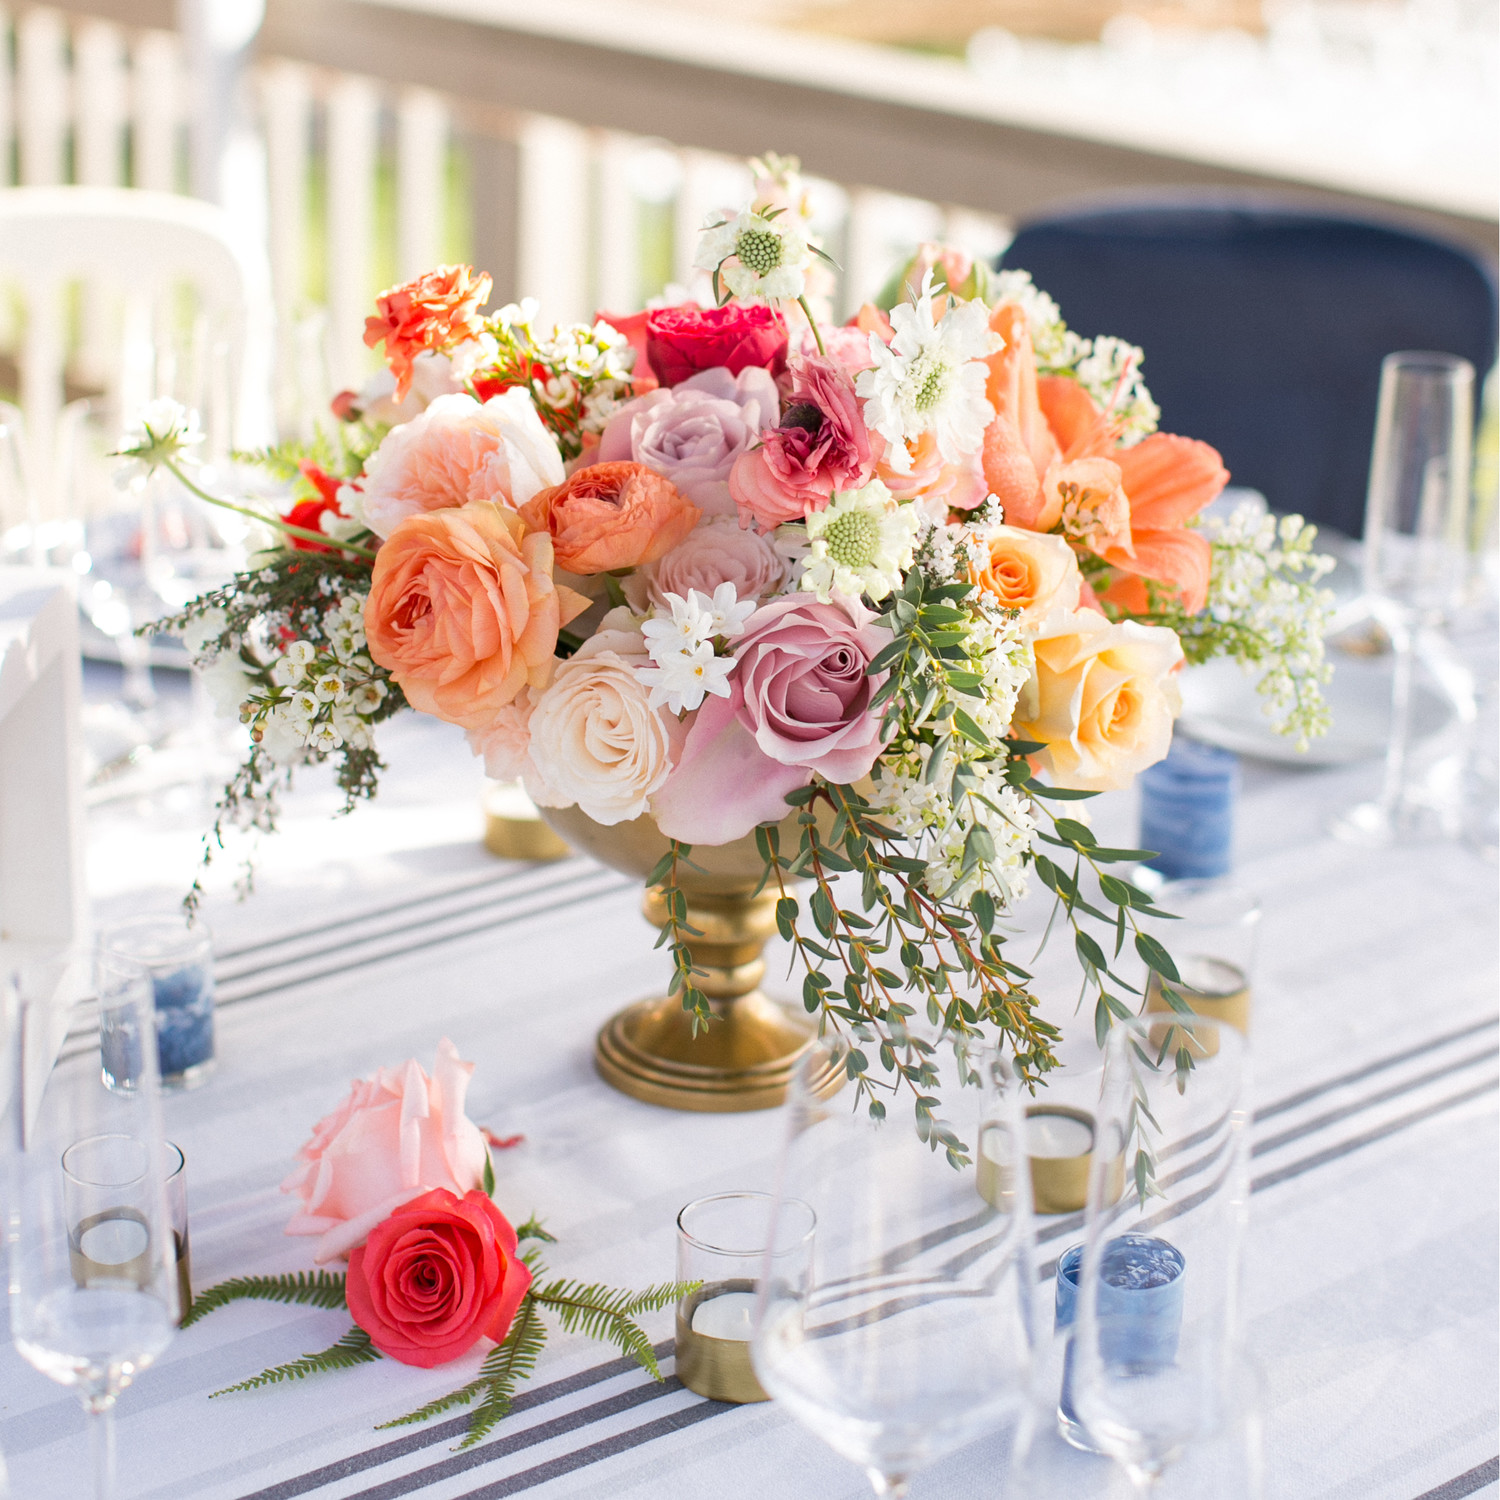 Cute Wedding Table Ideas: Floral Wedding Centerpieces